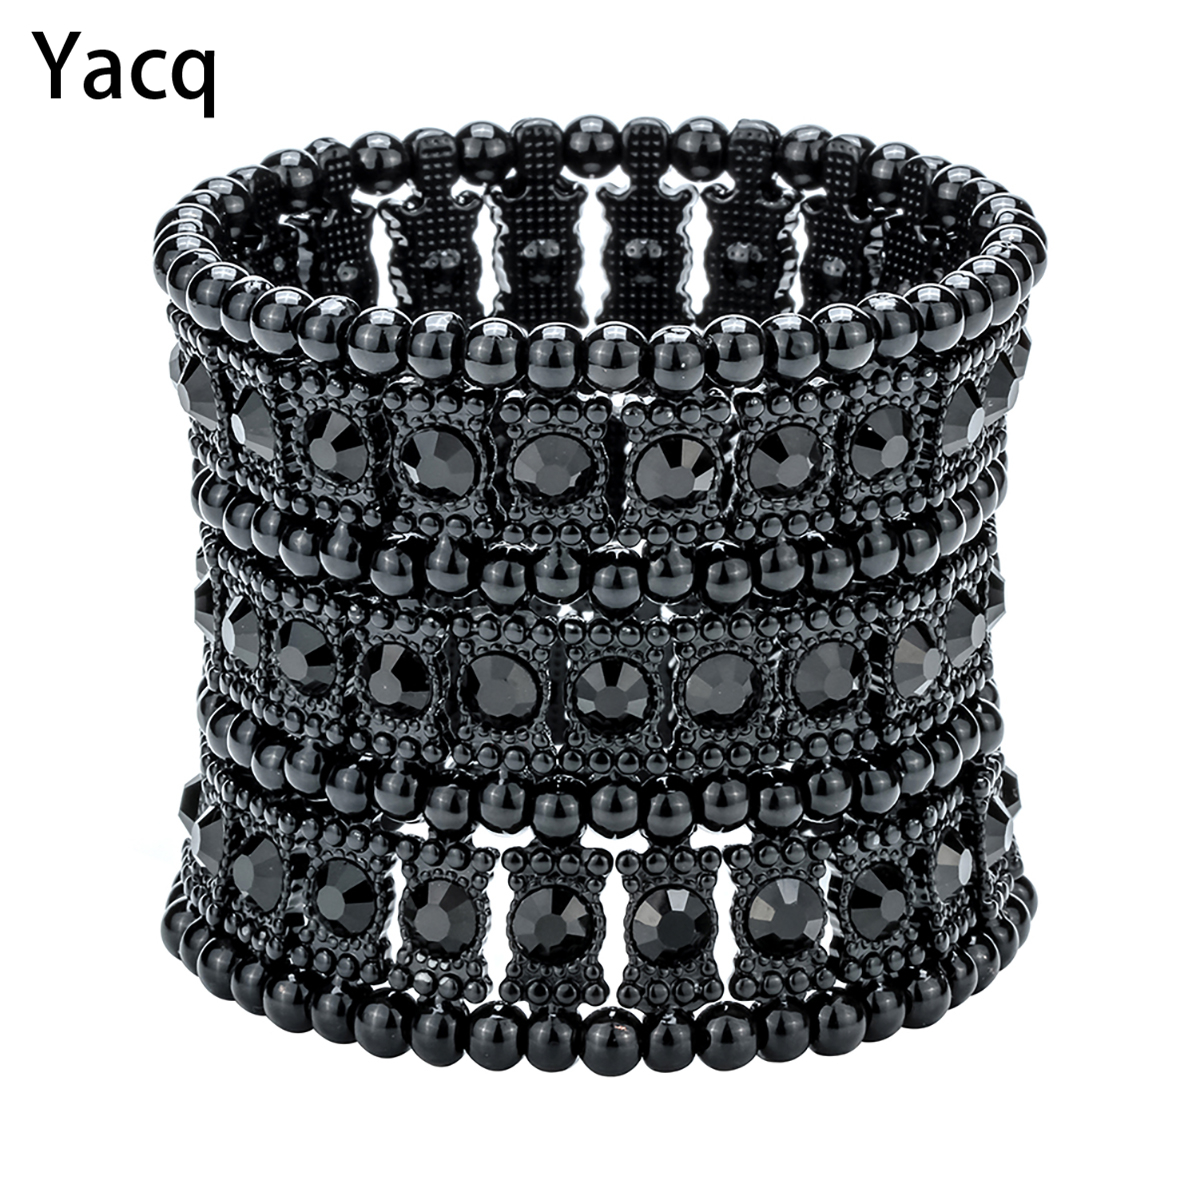 Yacq Multilayer Stretch Cuff pulsera Mujeres Crystal Wedding Bridal Party Fashion Jewelry Gift B11 Silver Gold Black Dropshipping